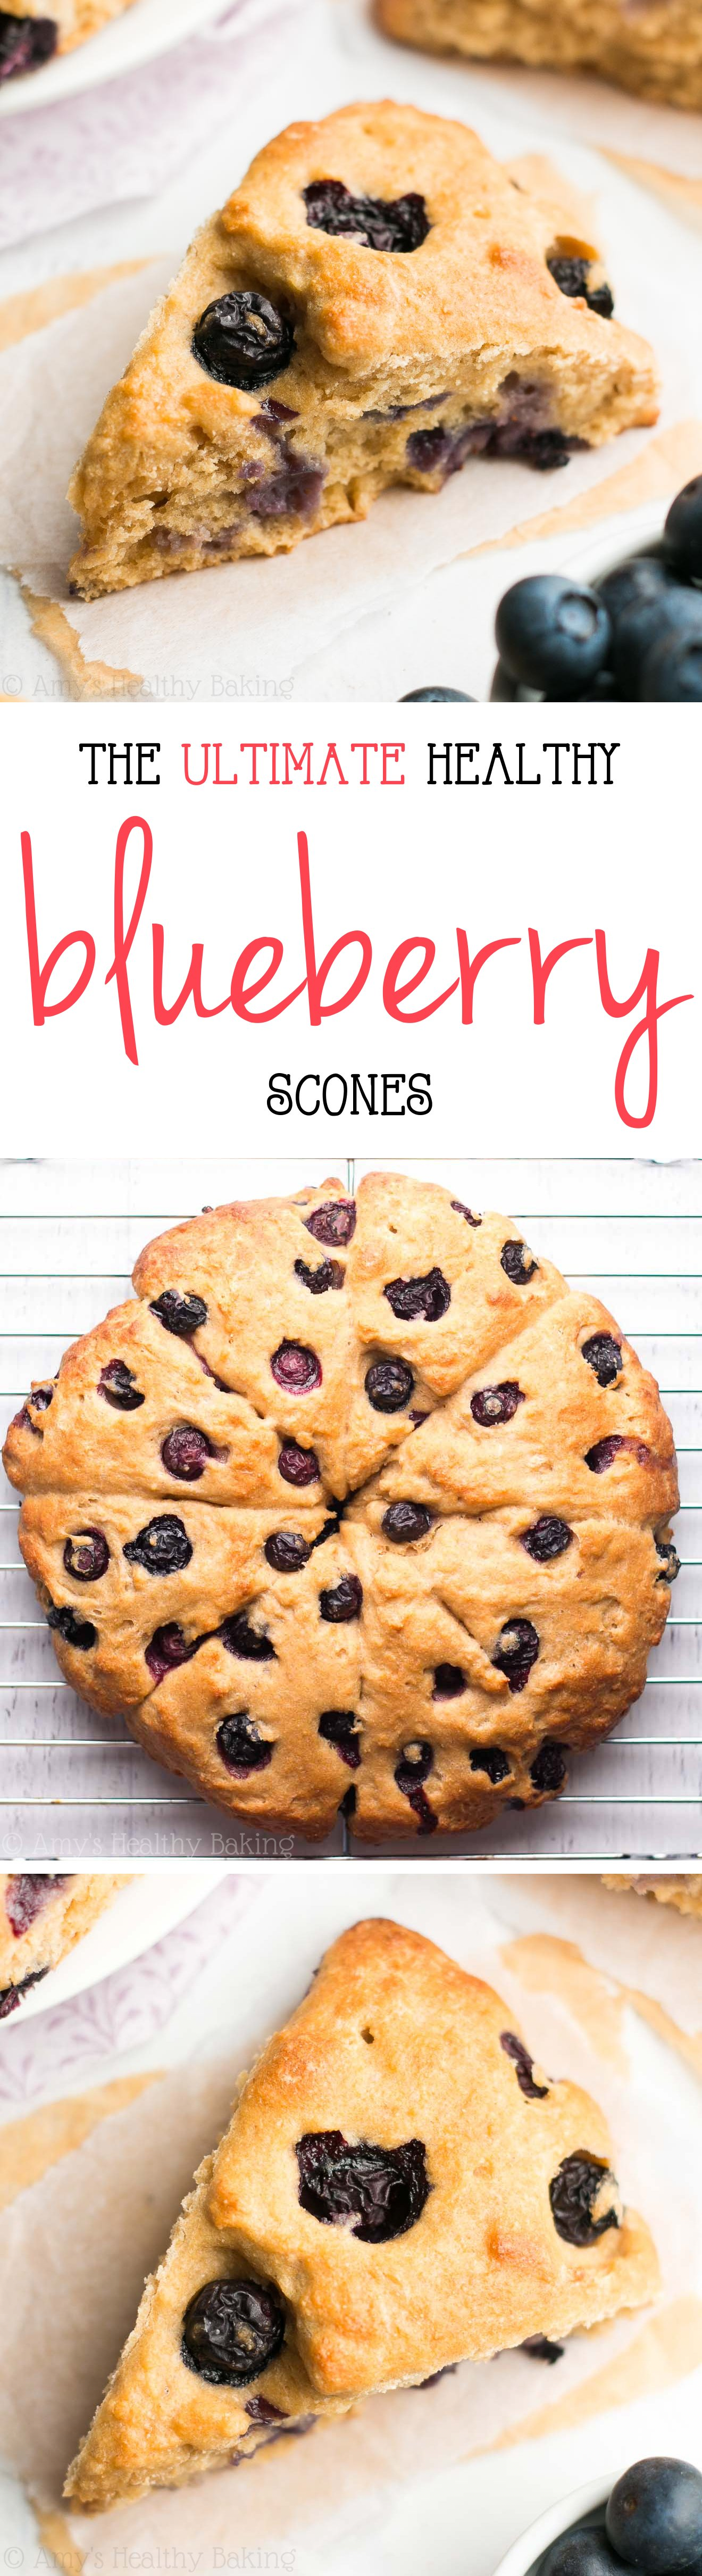 The Ultimate Healthy Blueberry Scones -- so easy, supremely tender & nearly 5g of protein! Ready in just 30 minutes!